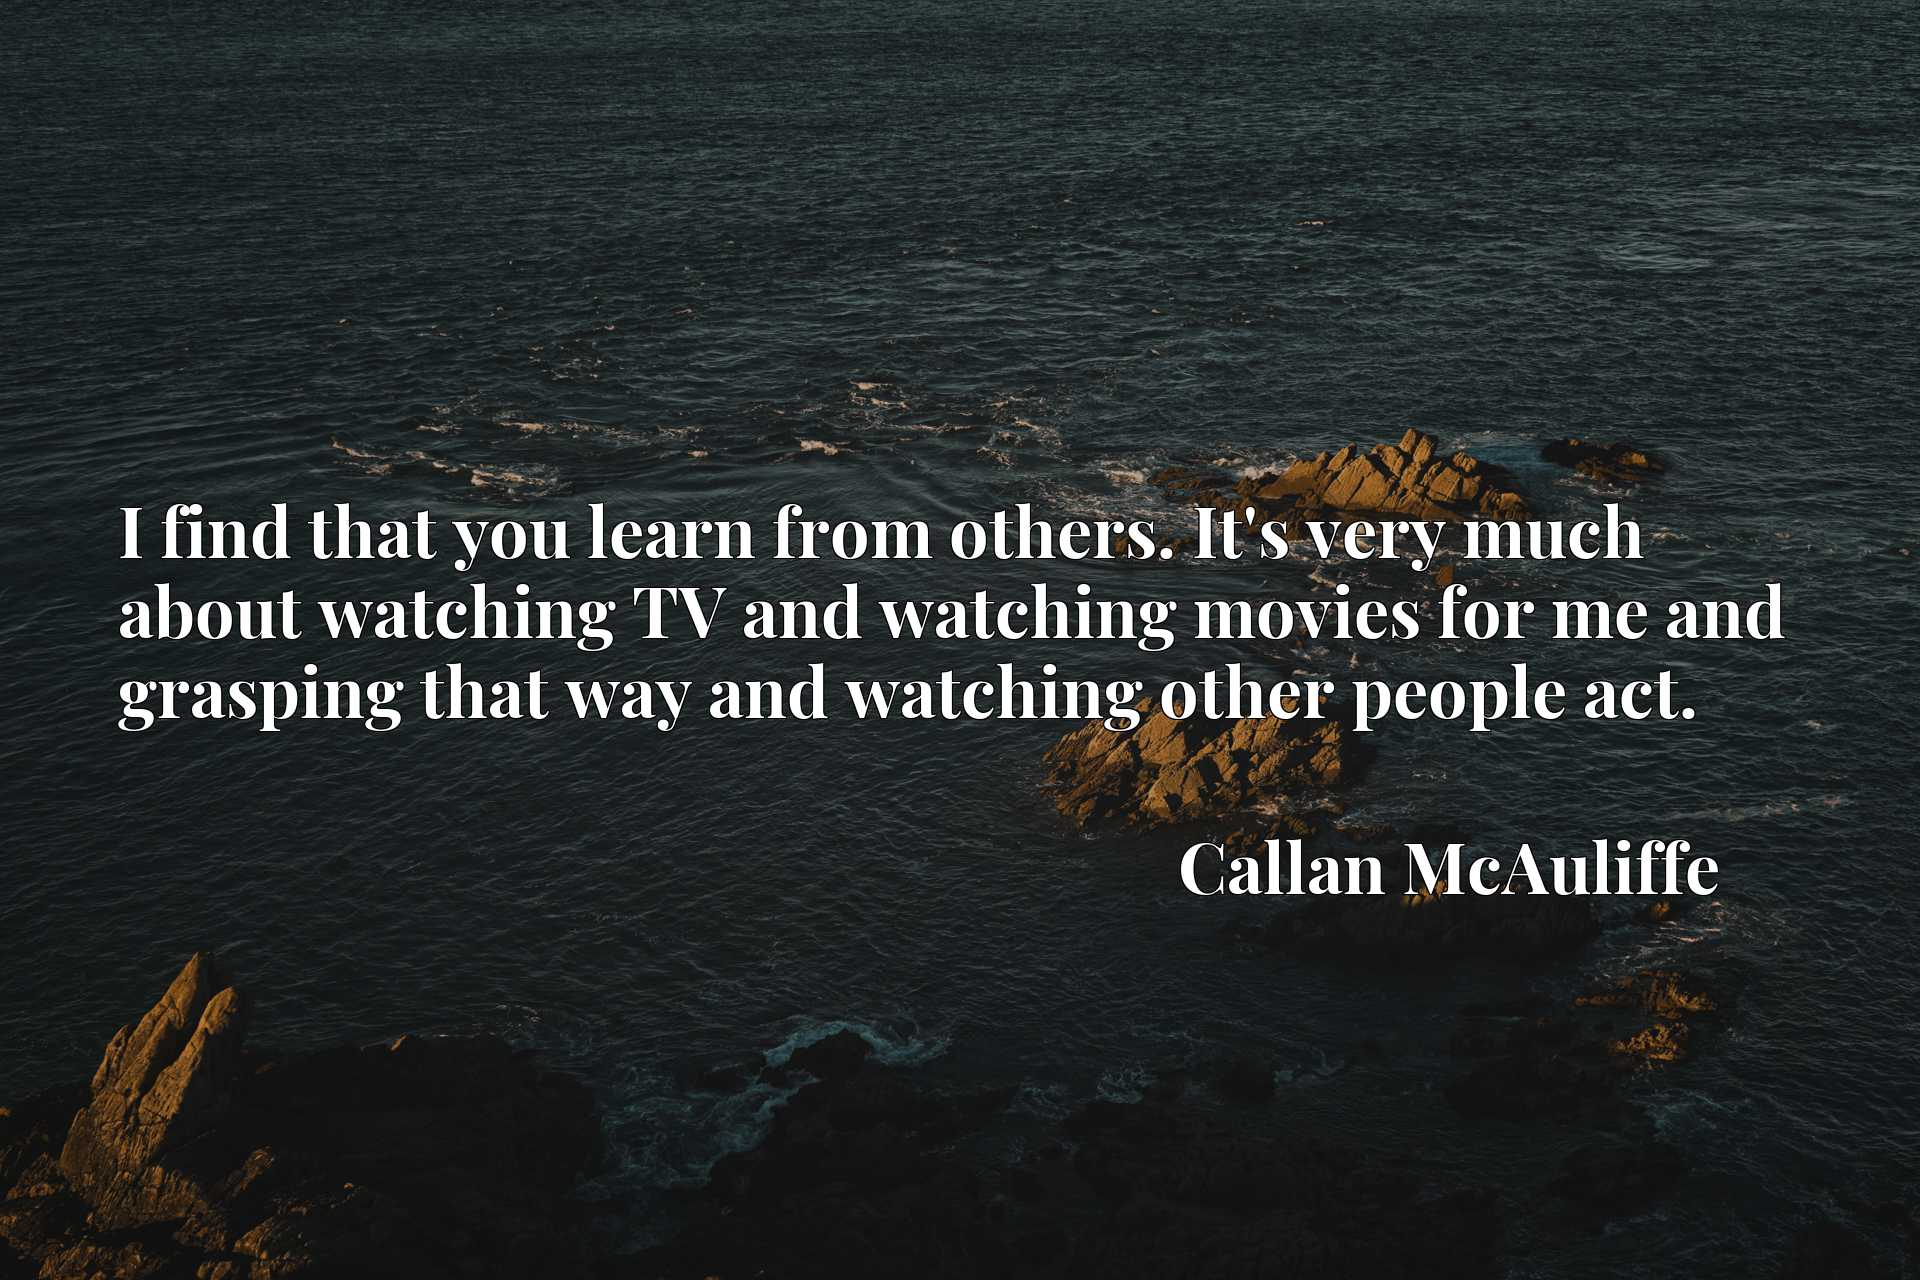 I find that you learn from others. It's very much about watching TV and watching movies for me and grasping that way and watching other people act.